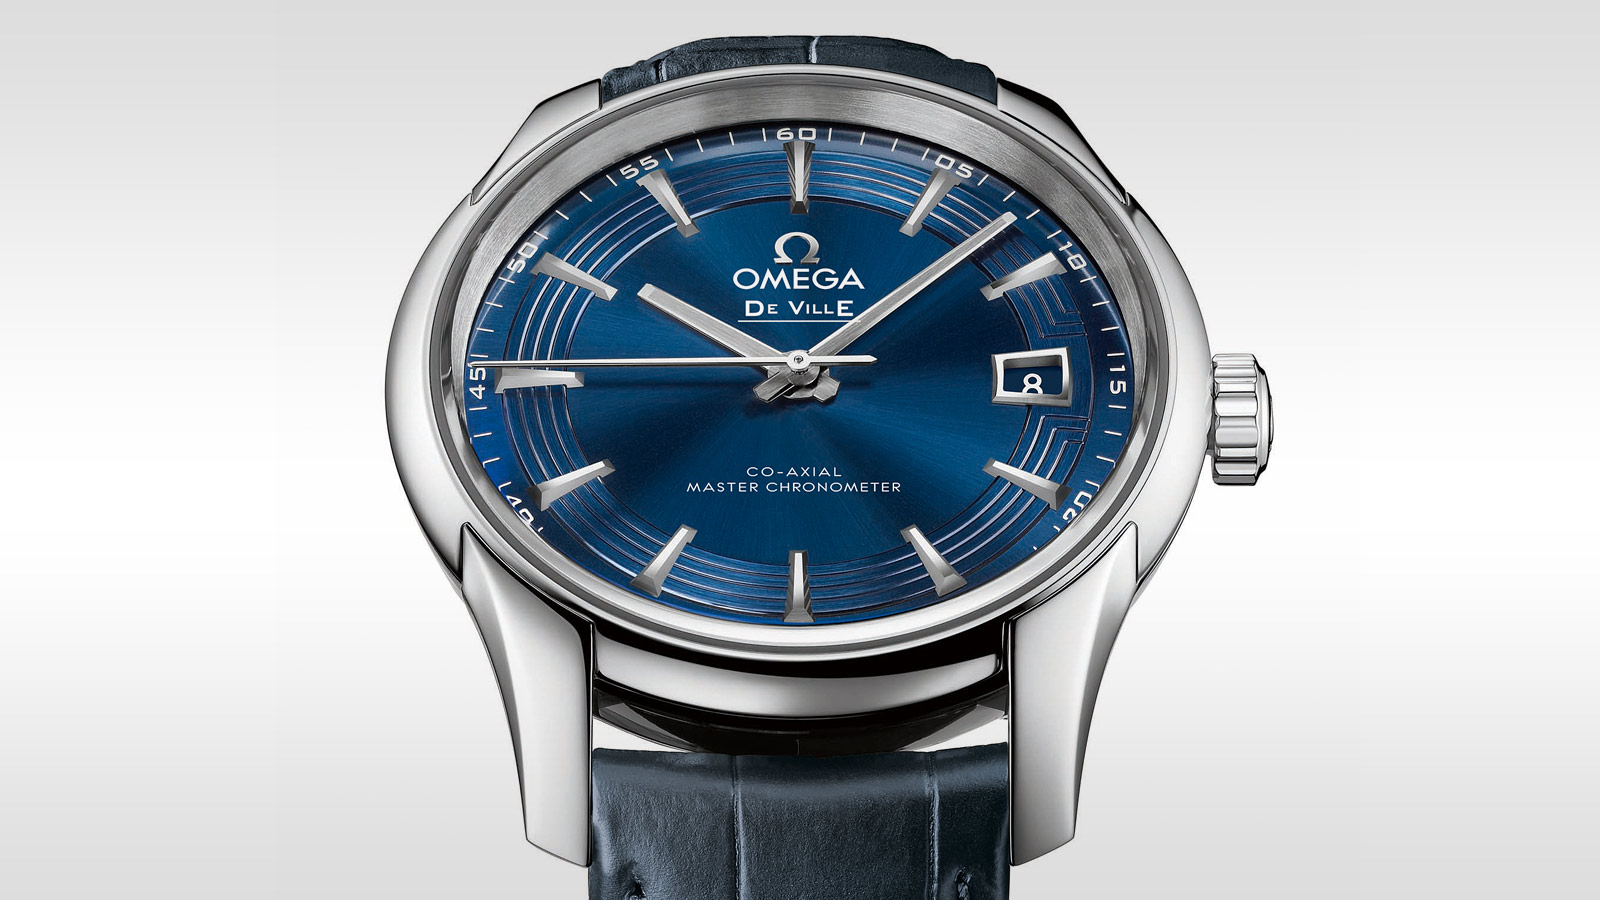 De Ville Hour Vision Hour Vision Omega Co‑Axial Master Chronometer 41 mm - 433.33.41.21.03.001 - View 1